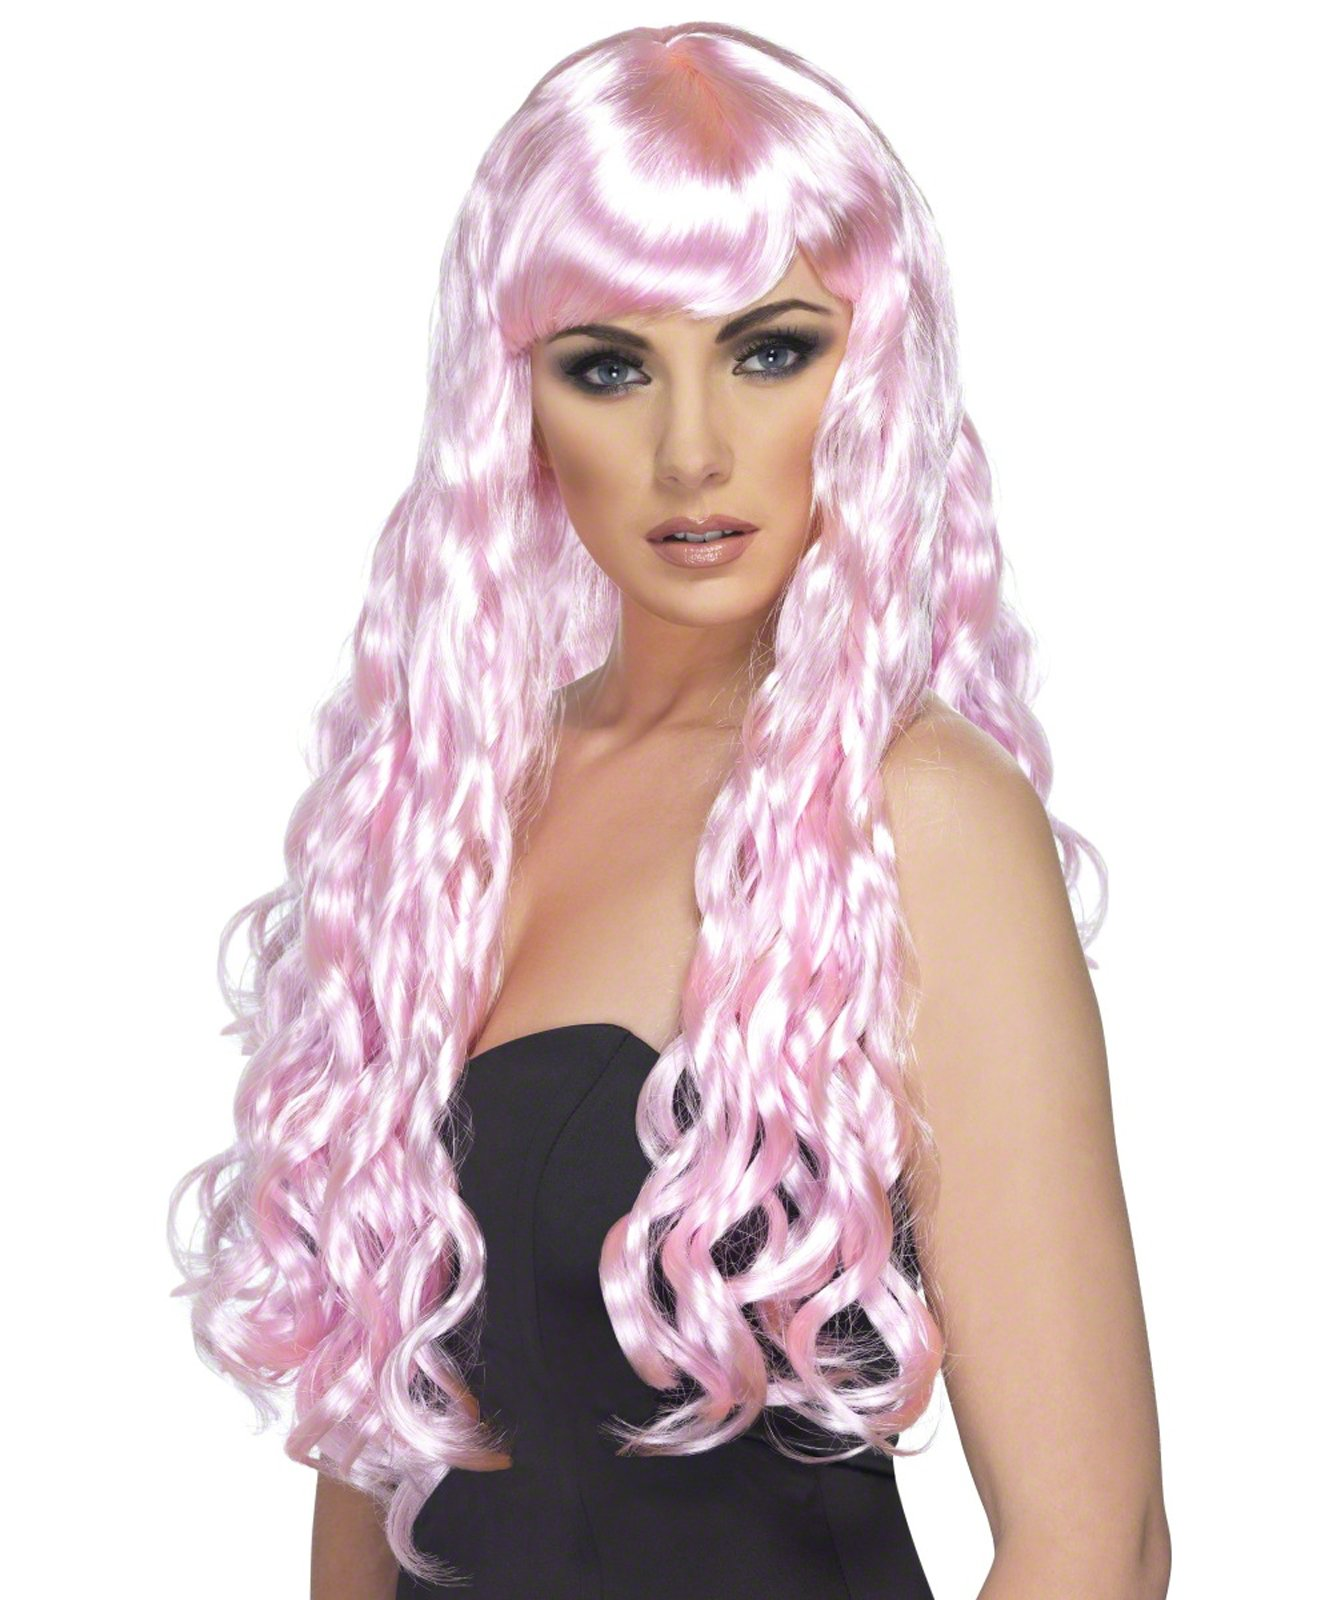 Desire (Candy Pink) Adult Wig